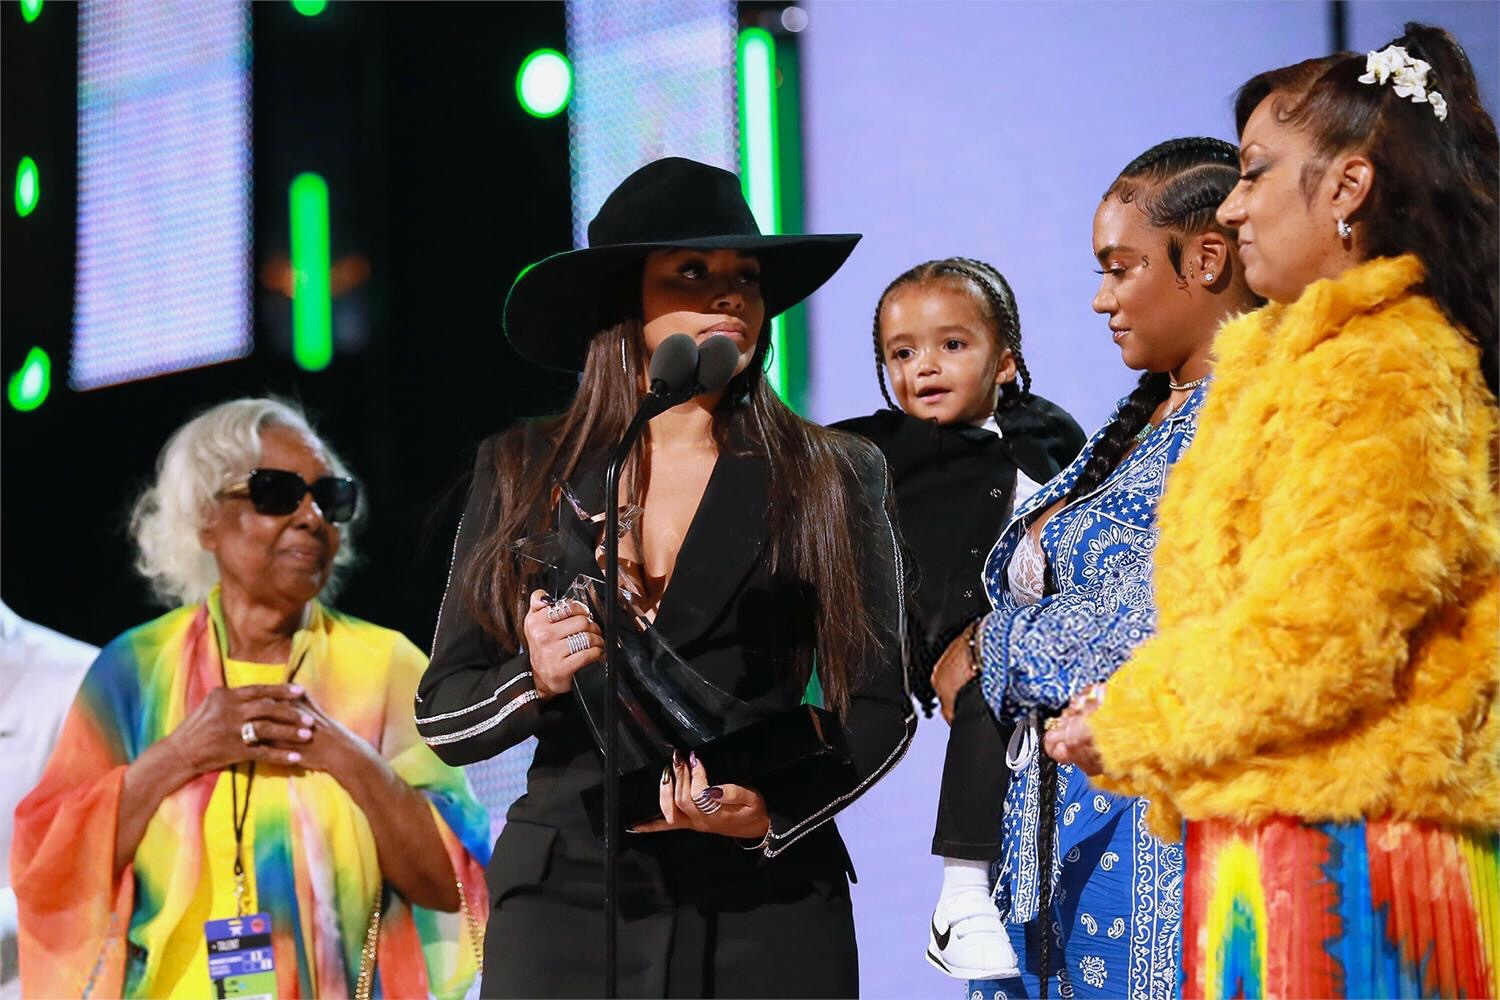 The Marathon continues as Nipsey Hussle's family accepts his BET Humanitarian Award